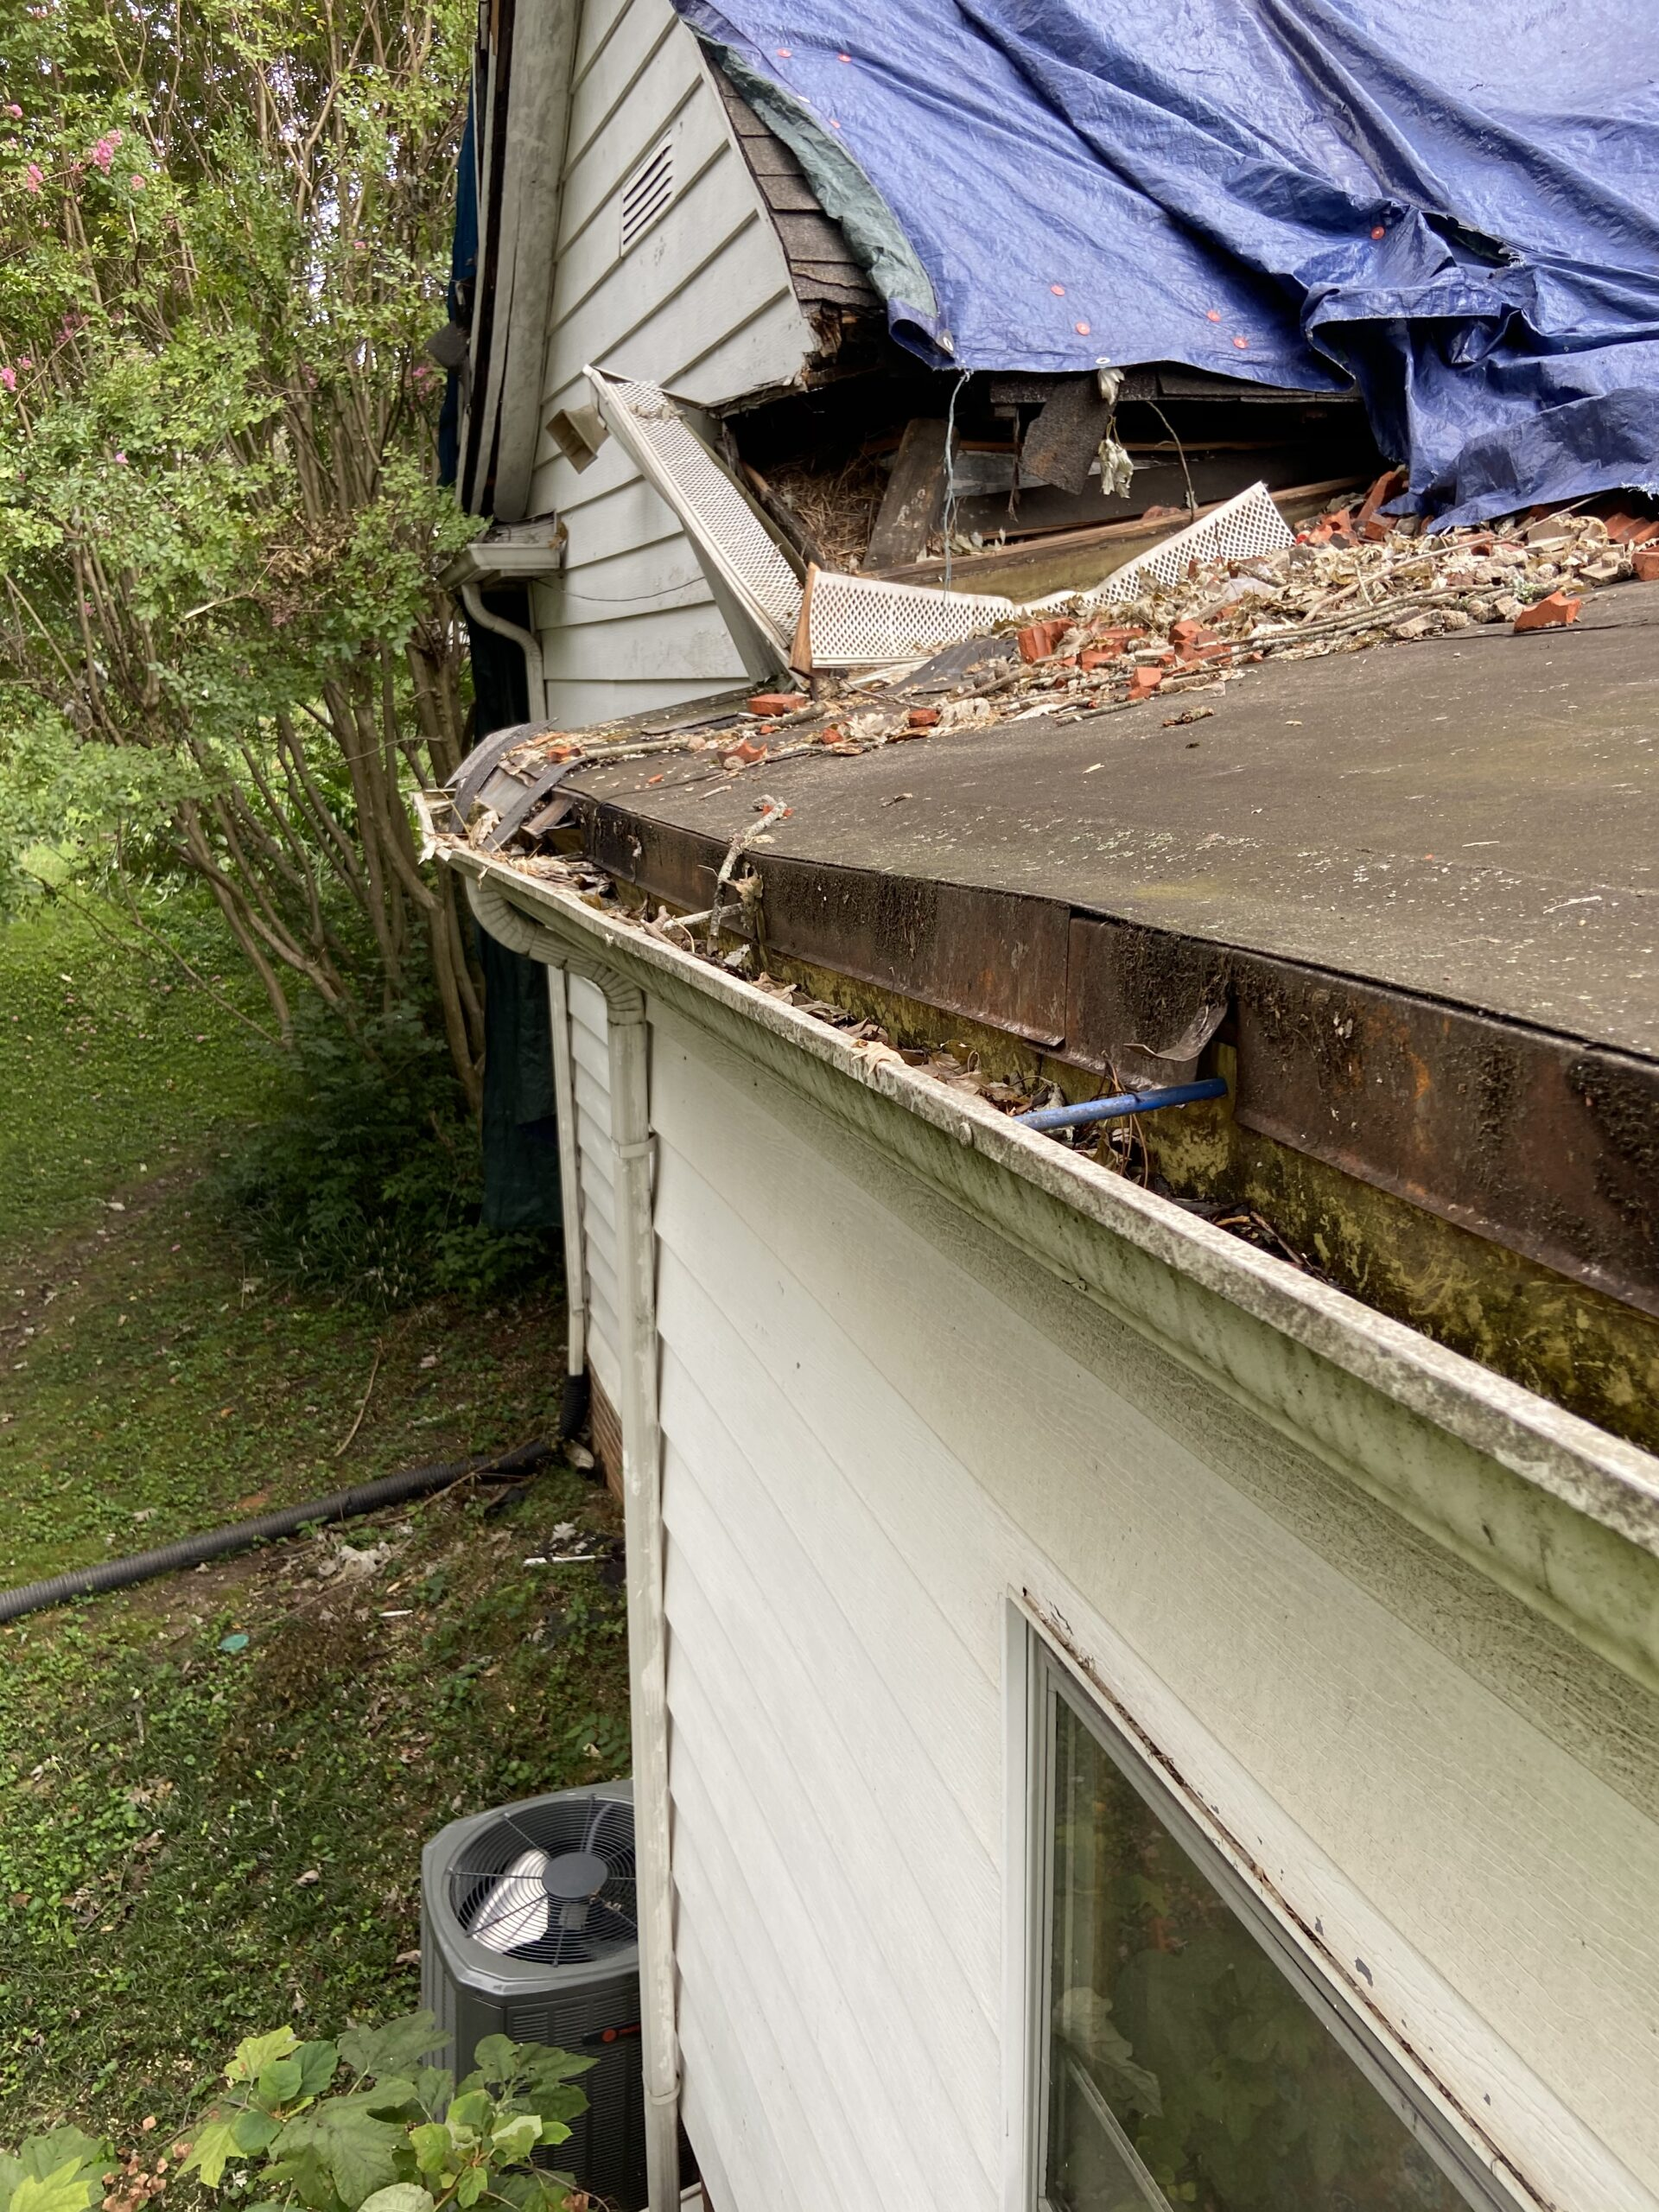 The roof eve was damaged by falling chimney